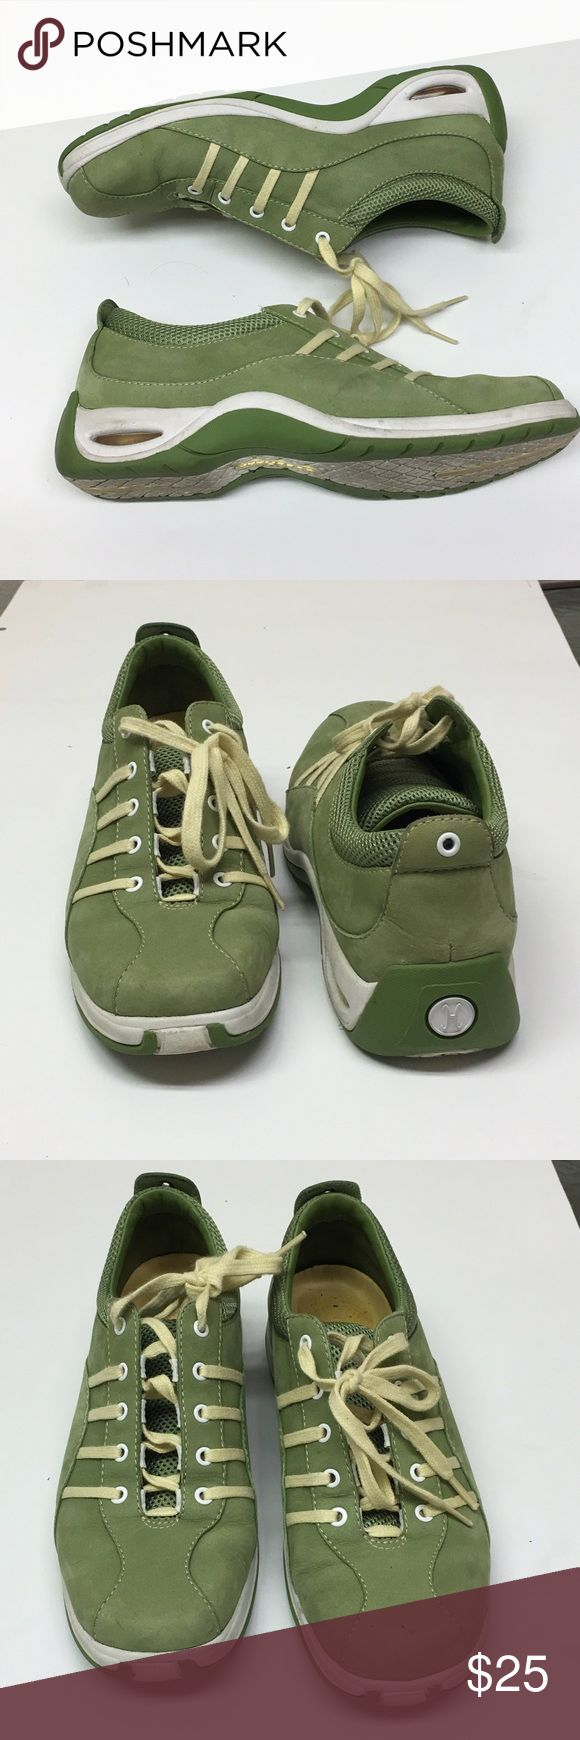 Women's 6B Cole Haan  Green leather sneakers. Sz 6 Women's 6B Cole Haan Air Tali Bris Tan Green Leather Sneakers. Pre-owned. But in perfect condition. Size 6. Cole Haan Shoes Sneakers